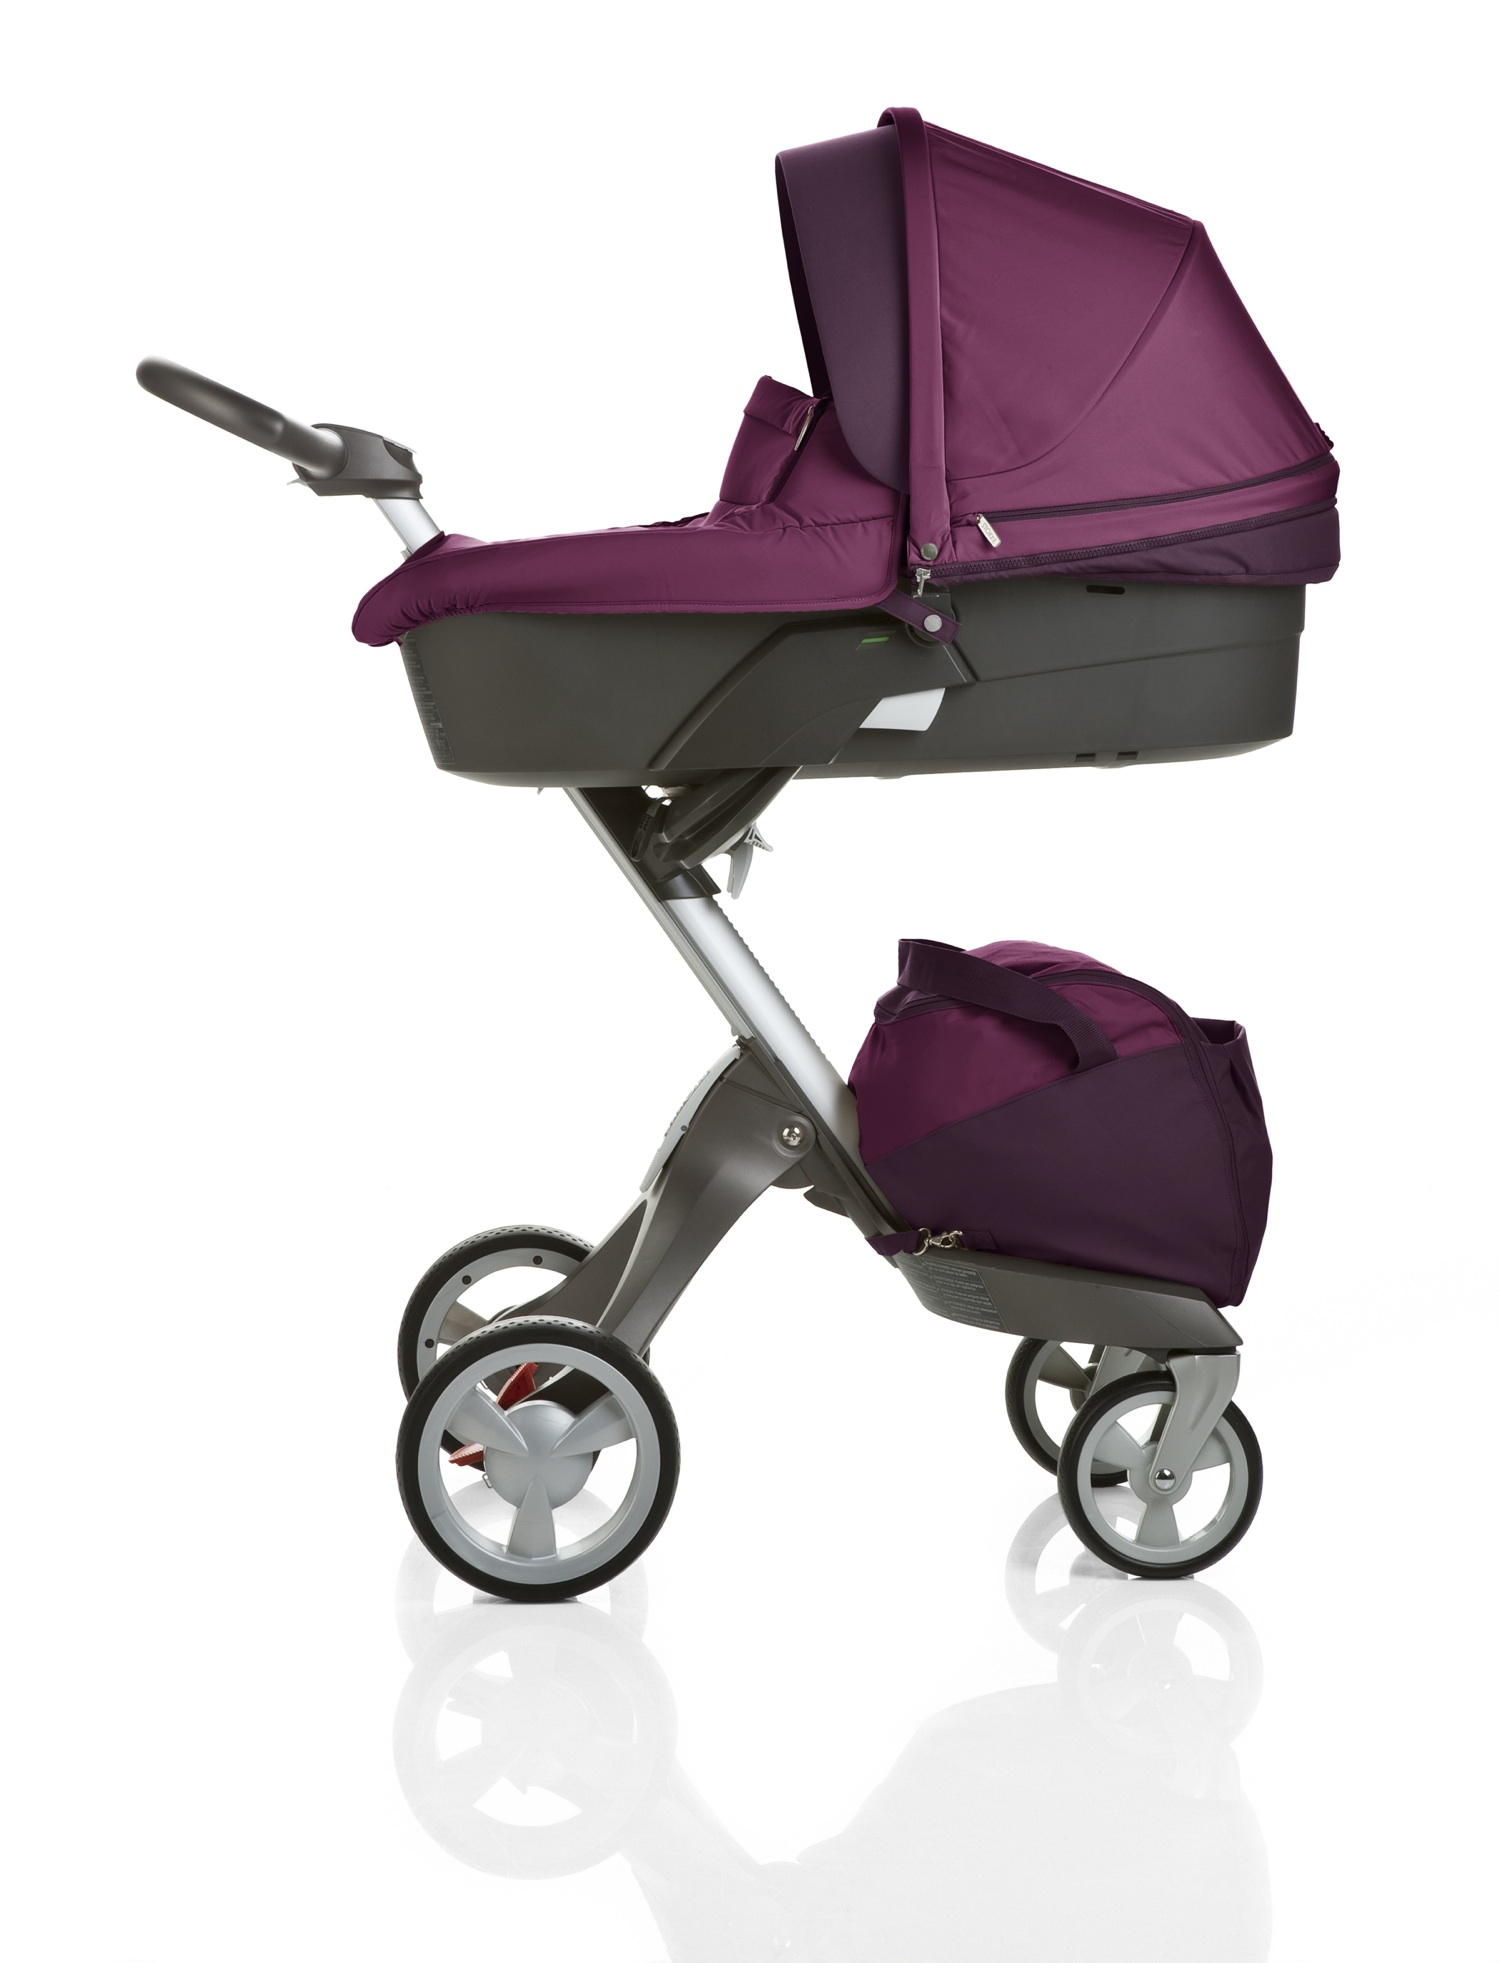 Stokke Rolls Out More Features For Xplory The Next Kid Thing